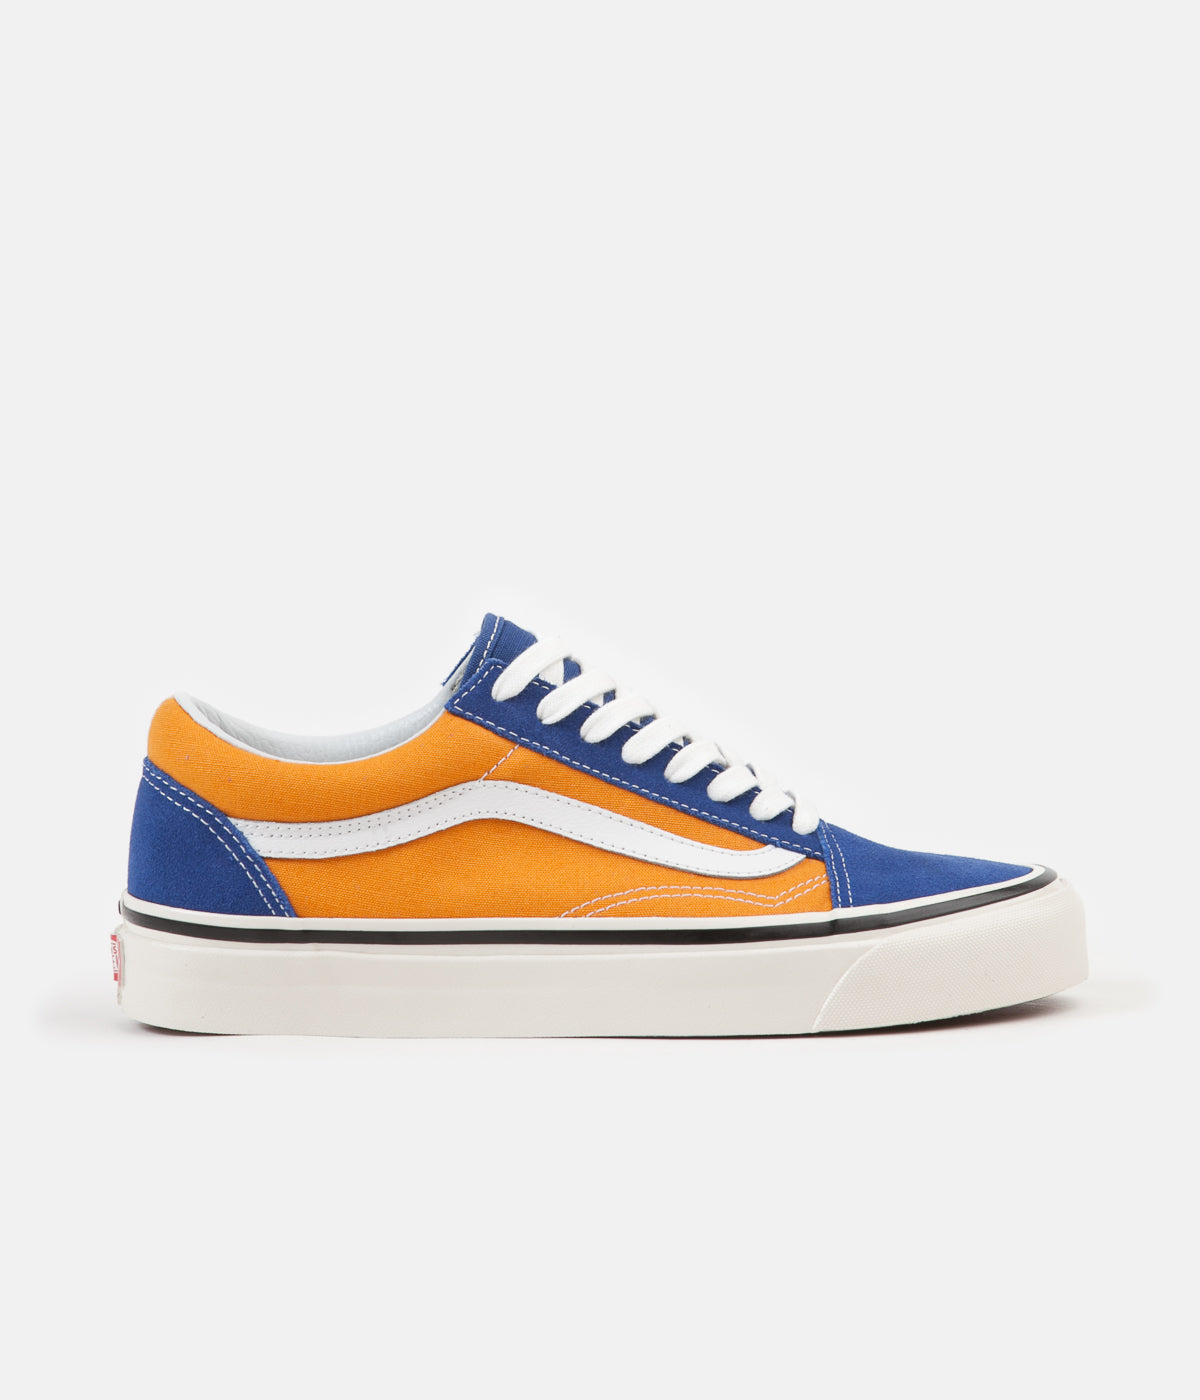 Vans Old Skool 36 DX Anaheim Factory Shoes - OG Blue   OG Gold ... 9839e6708959